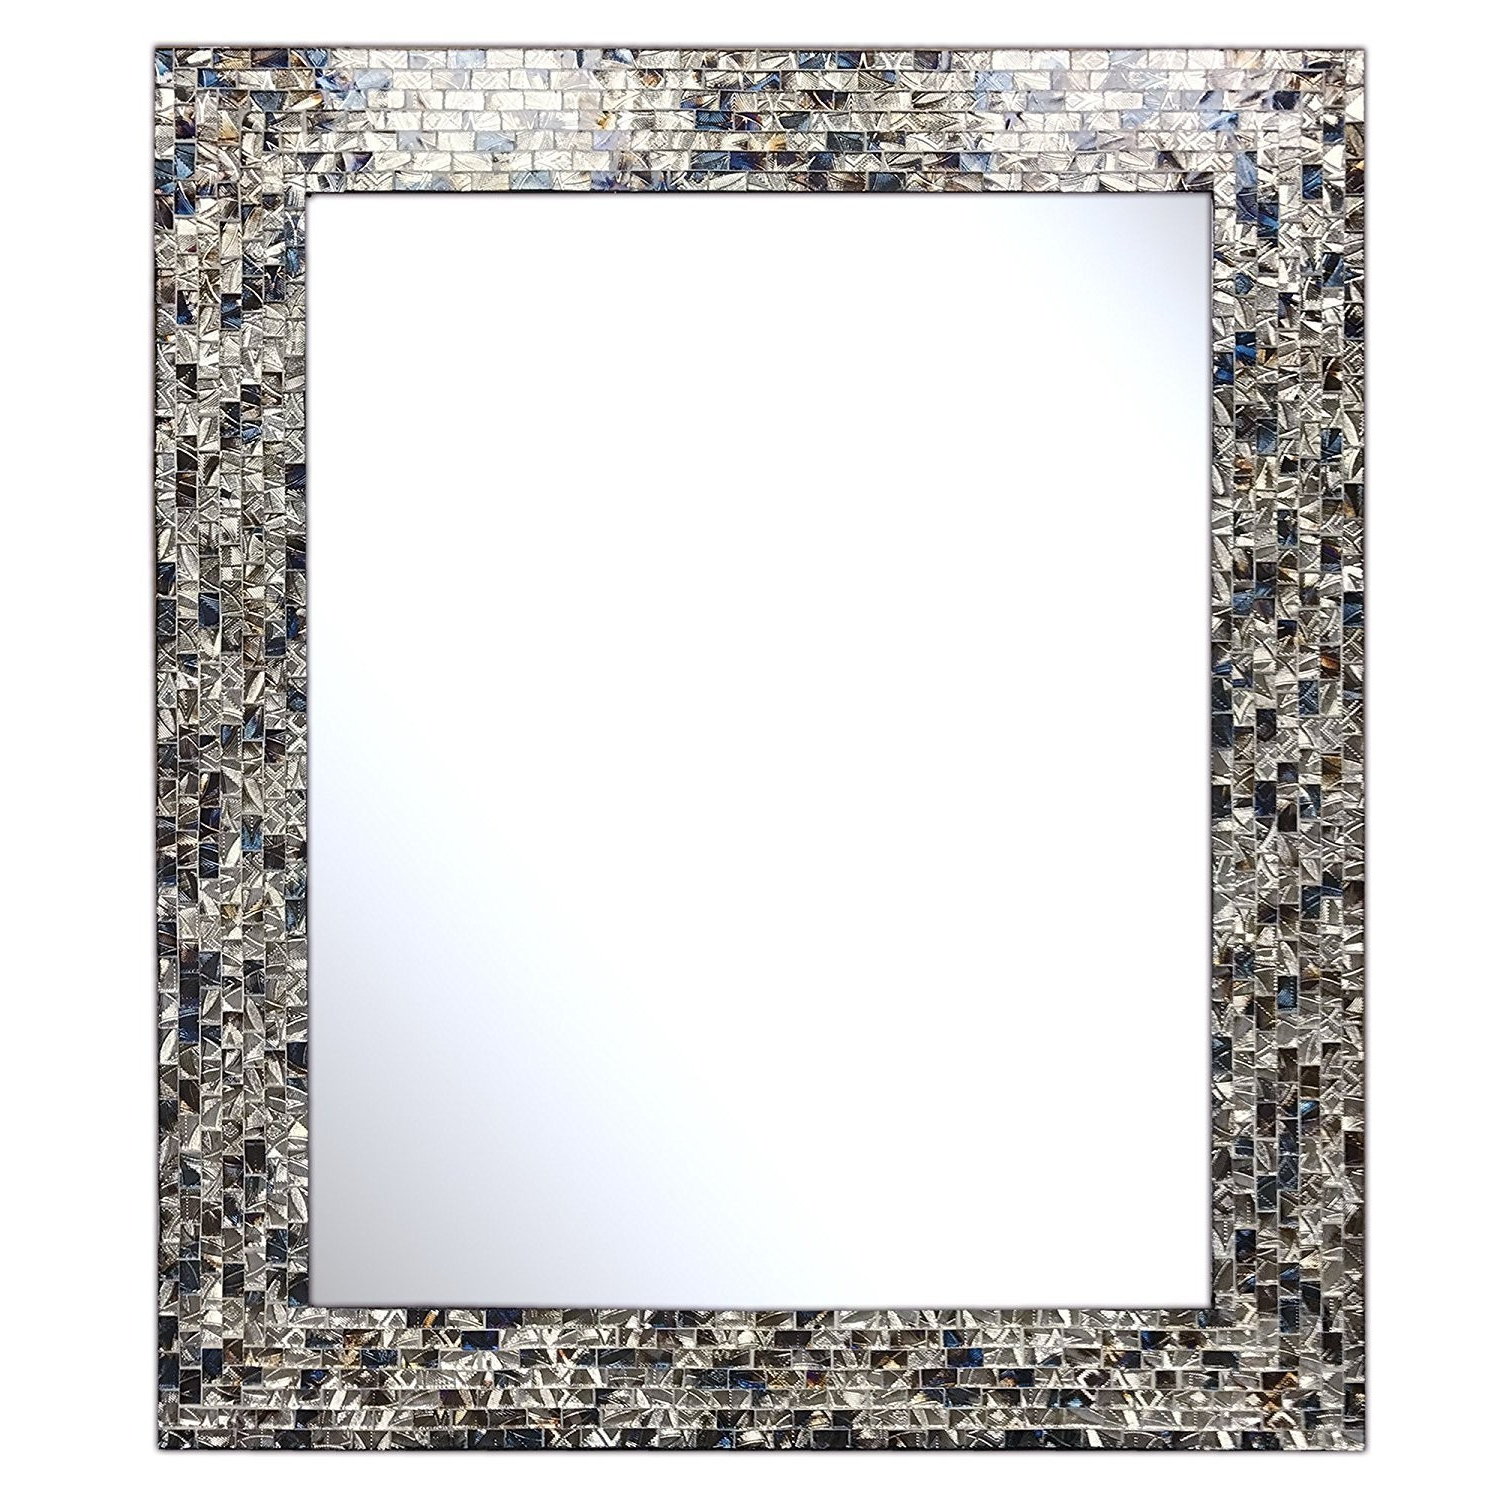 "Recent Glass Mosaic Wall Mirrors Within Multi Colored & Silver, Luxe Mosaic Glass Framed Wall Mirror, Decorative Embossed Rectangular Vanity / Accent Mirror (30"" X 24"") (Gallery 7 of 20)"